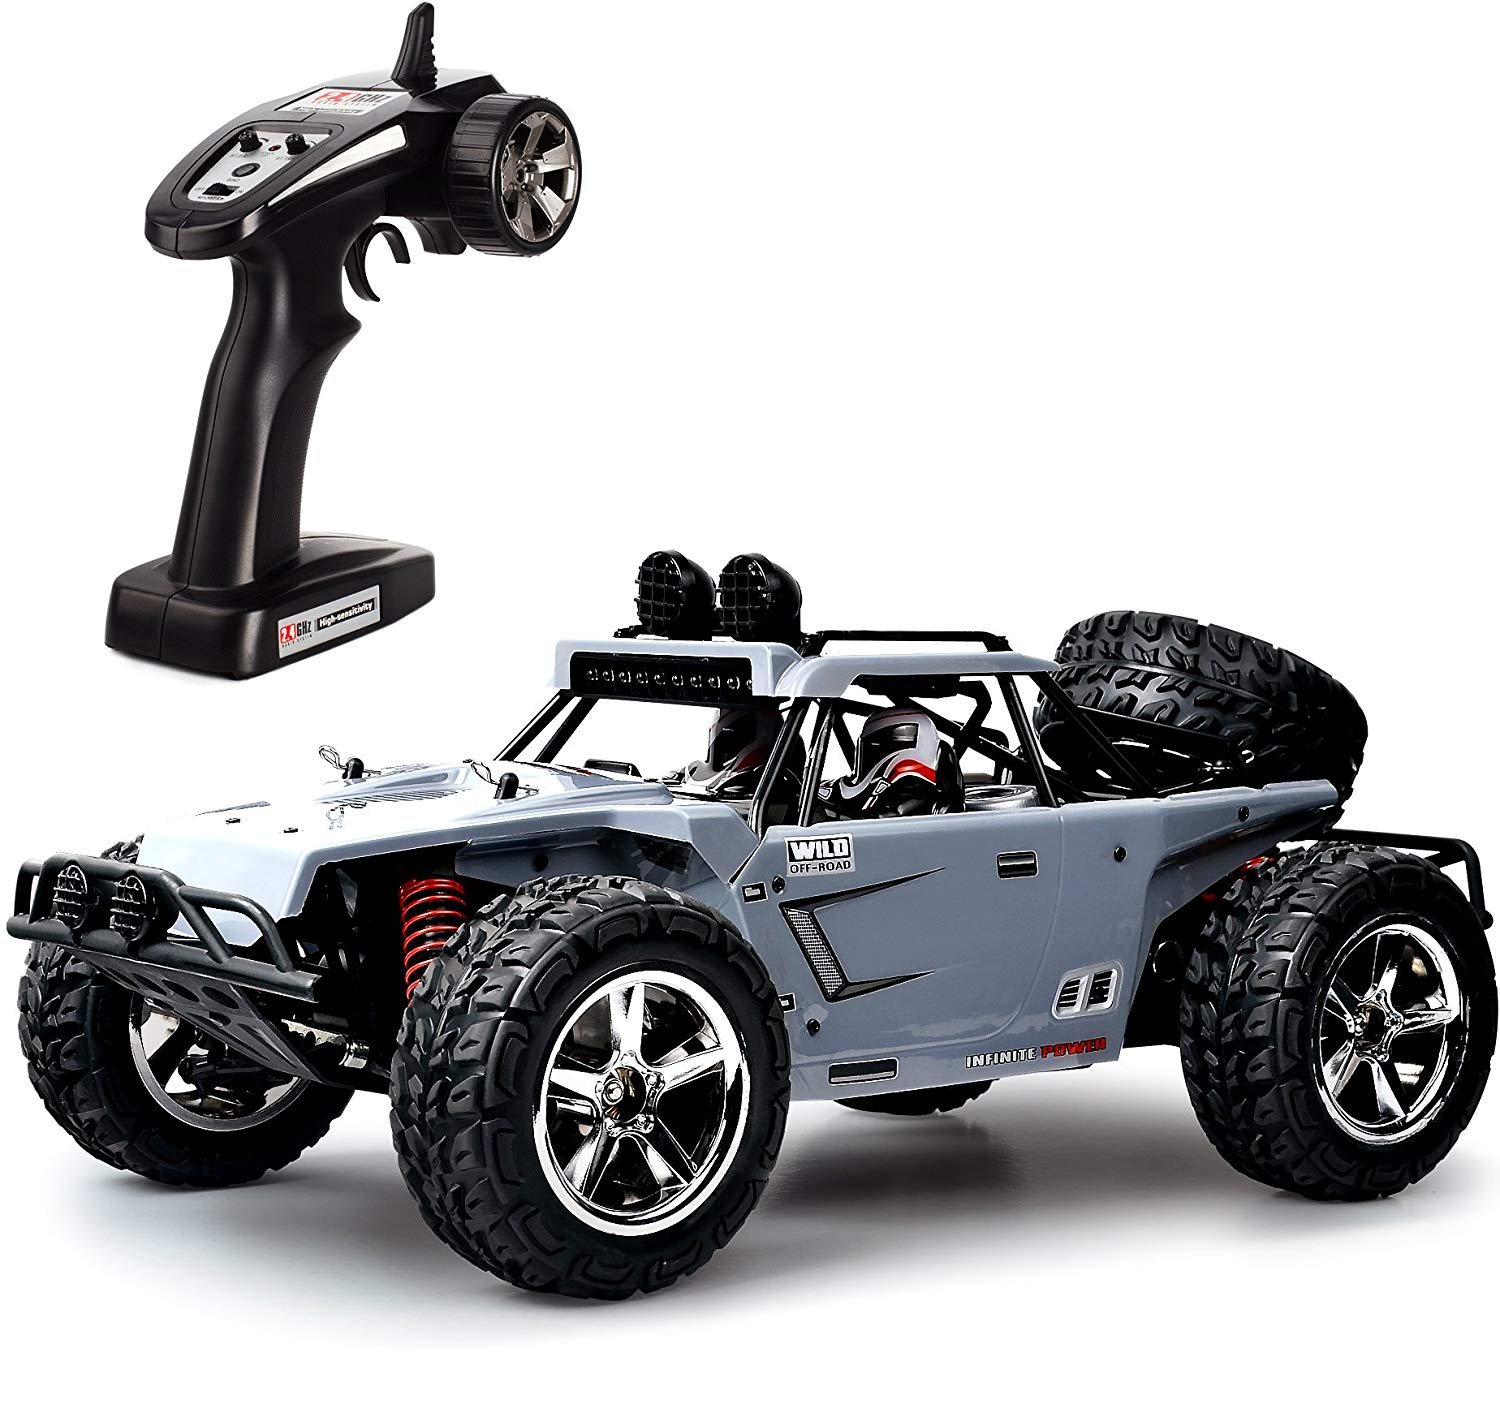 tozo c5031 rc car desert buggy warhammer high speed 30mph 4x4 fast race cars 1 12 scale rtr racing 4wd electric power 2 4ghz radio remote